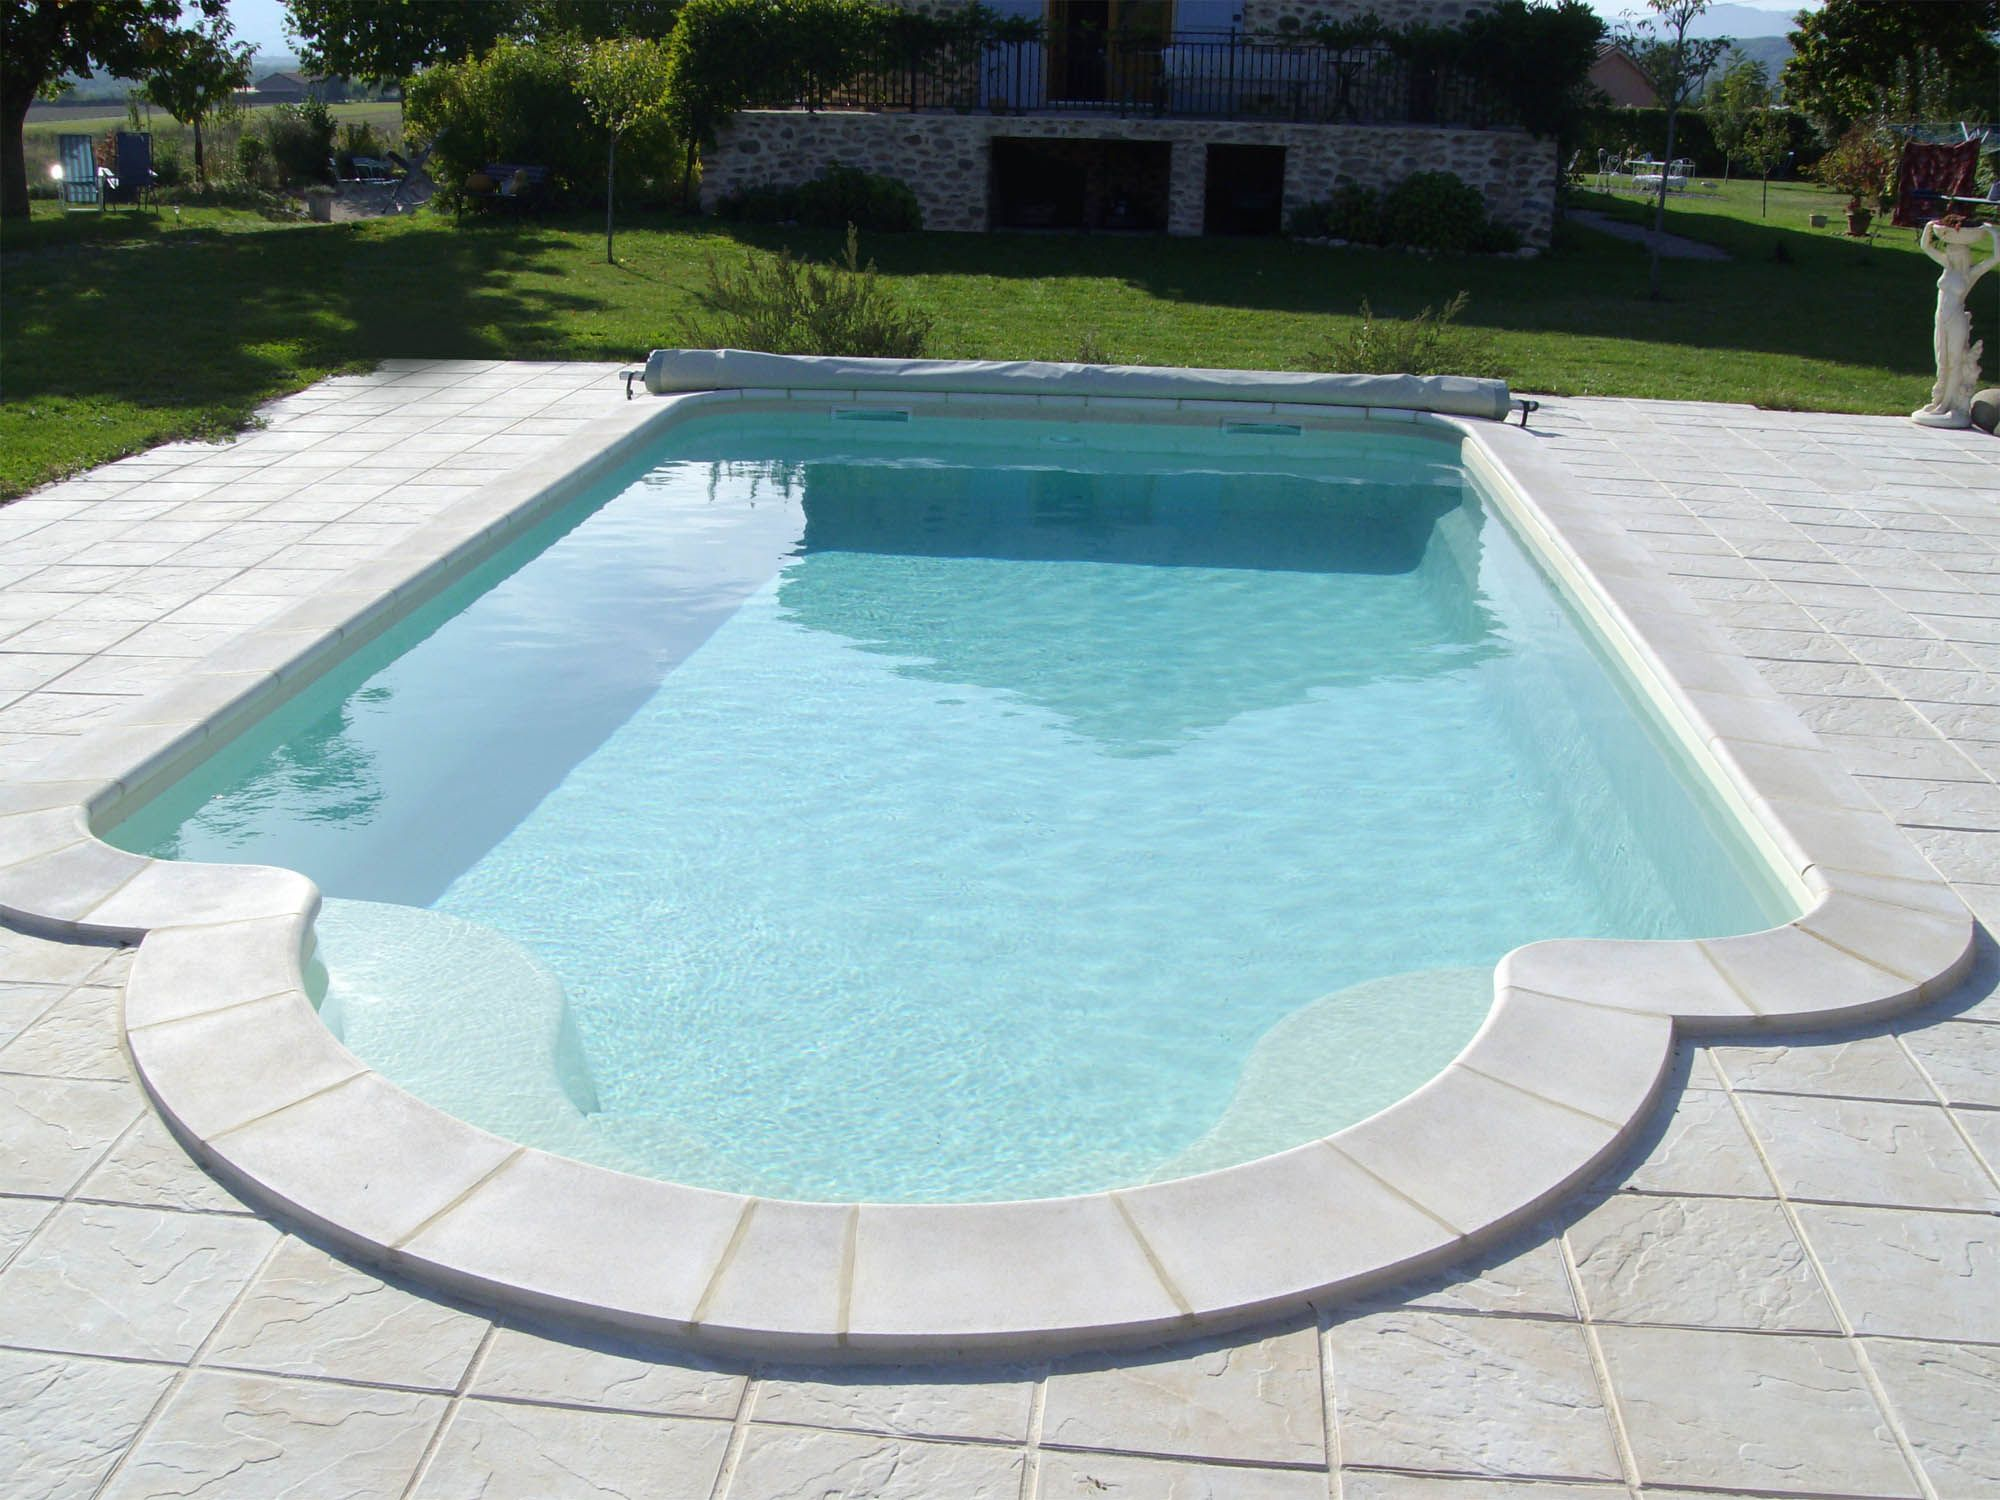 Piscine coque polyester variation fabrication fran aise for Piscine polyester